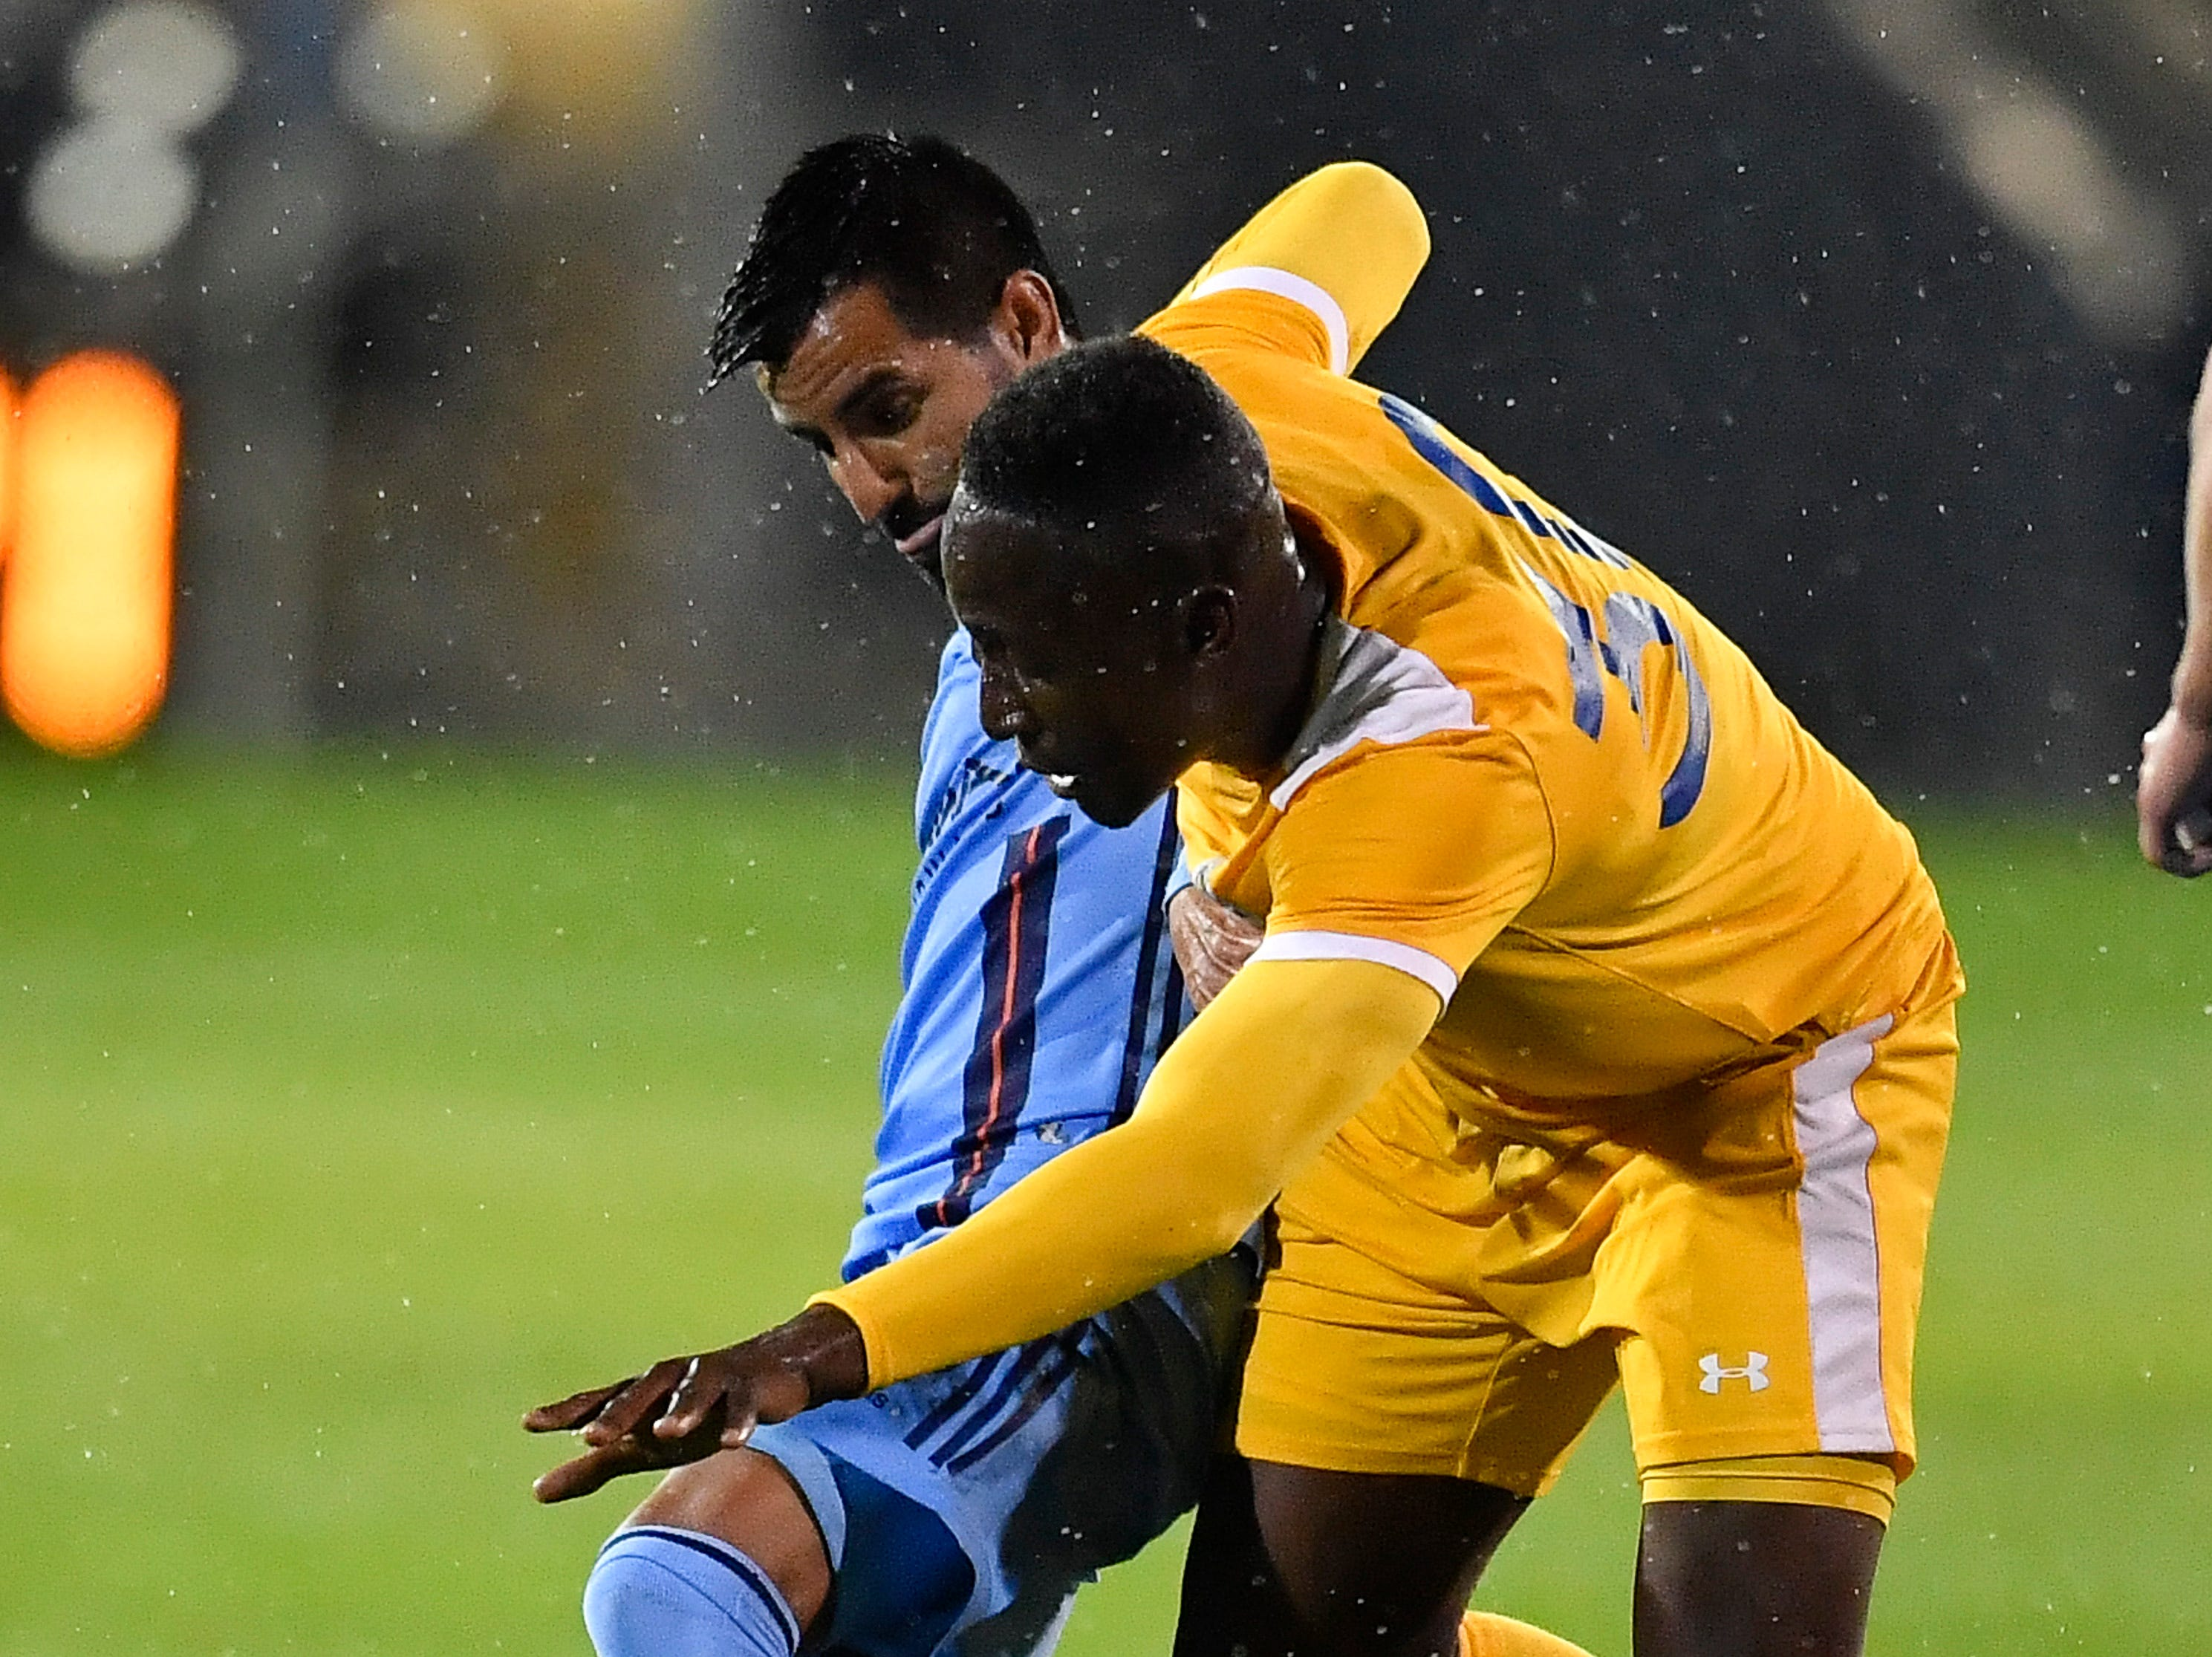 Nashville SC midfielder Bolu Akinyode (30) battles a New York City FC defender for the ball during the first half at First Tennessee Park Friday, Feb. 22, 2019 in Nashville, Tenn.